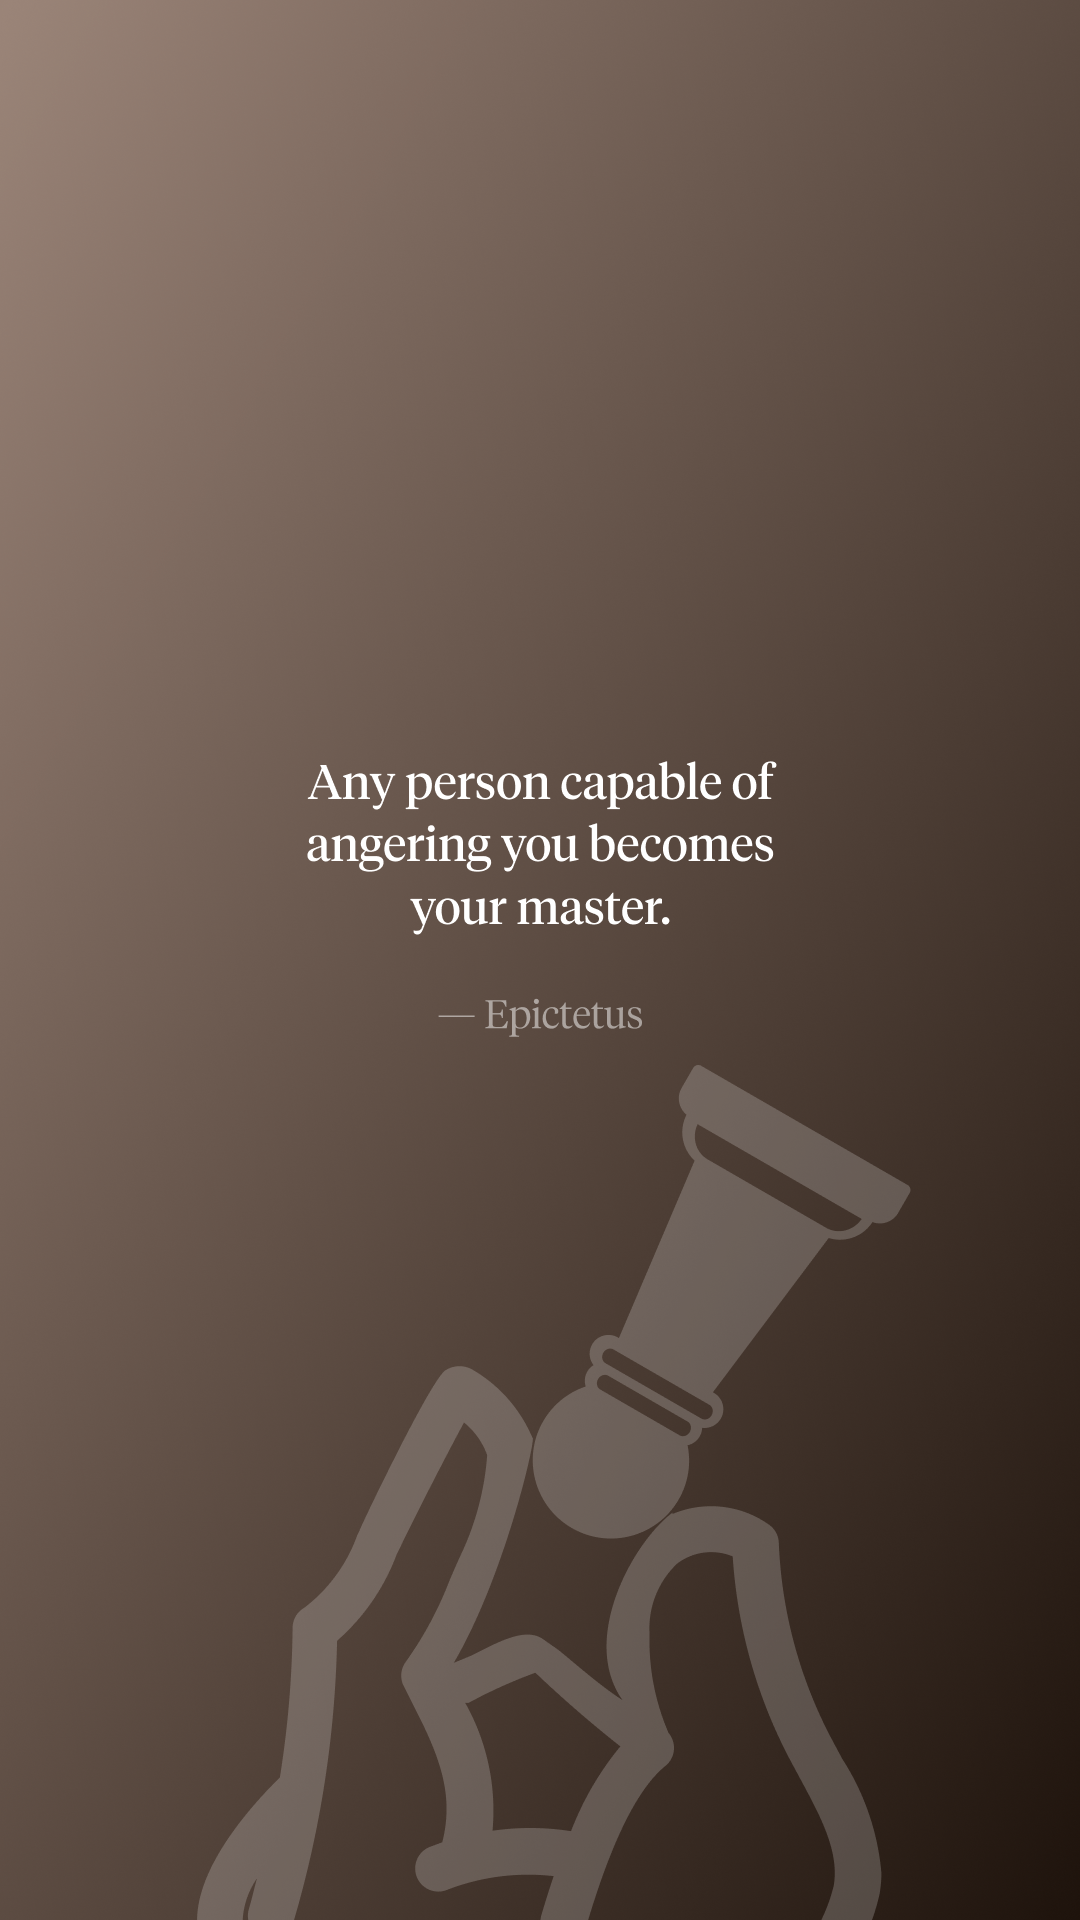 Any person capable of angering you becomes your master. ― Epictetus [1080 x 1920]